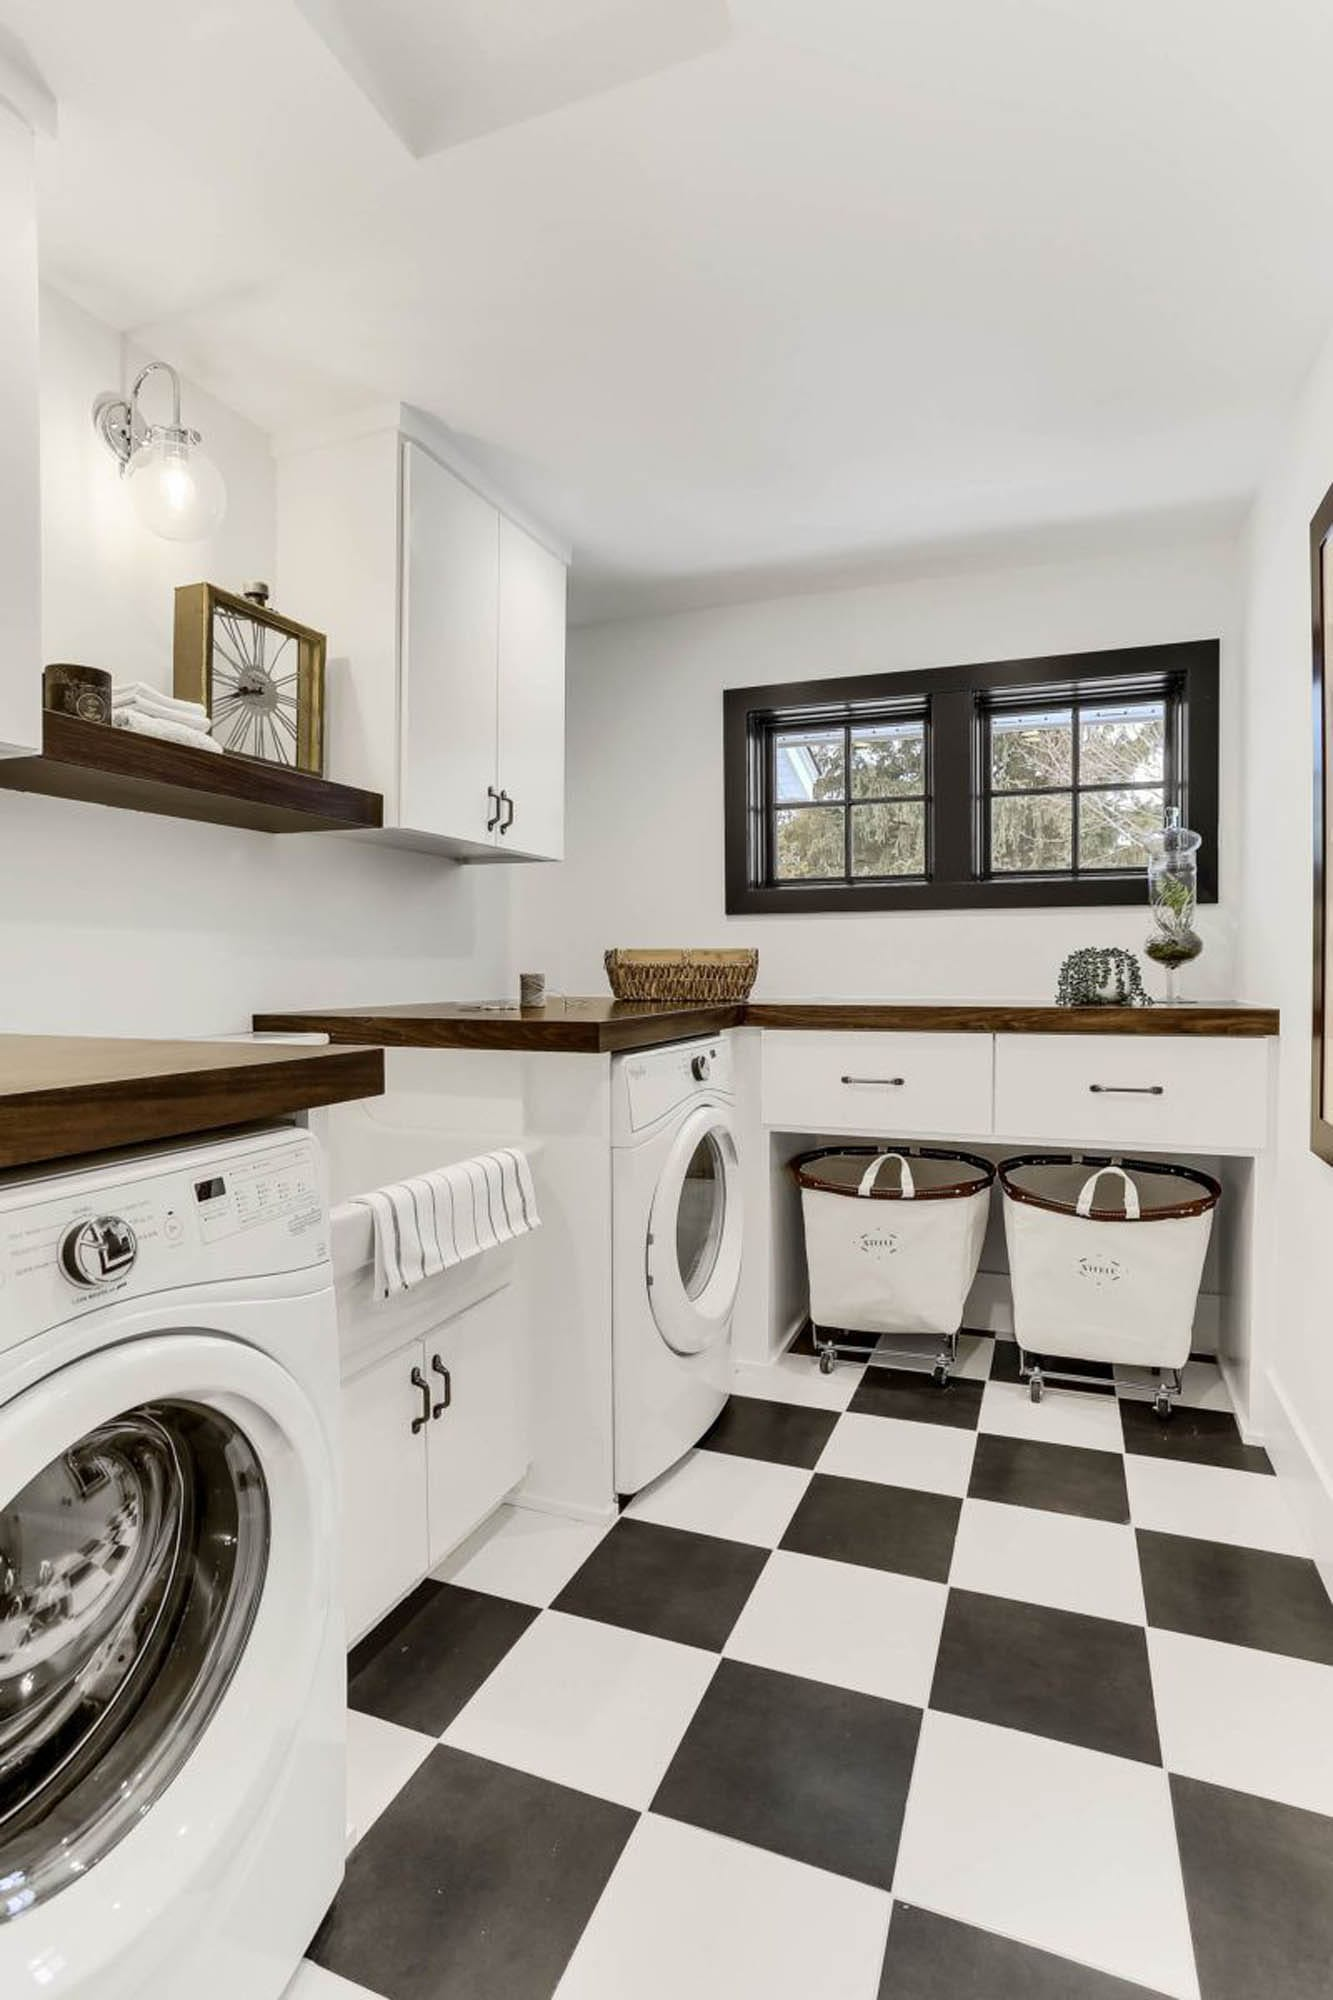 Black-and-white checkerboard laundry room floor